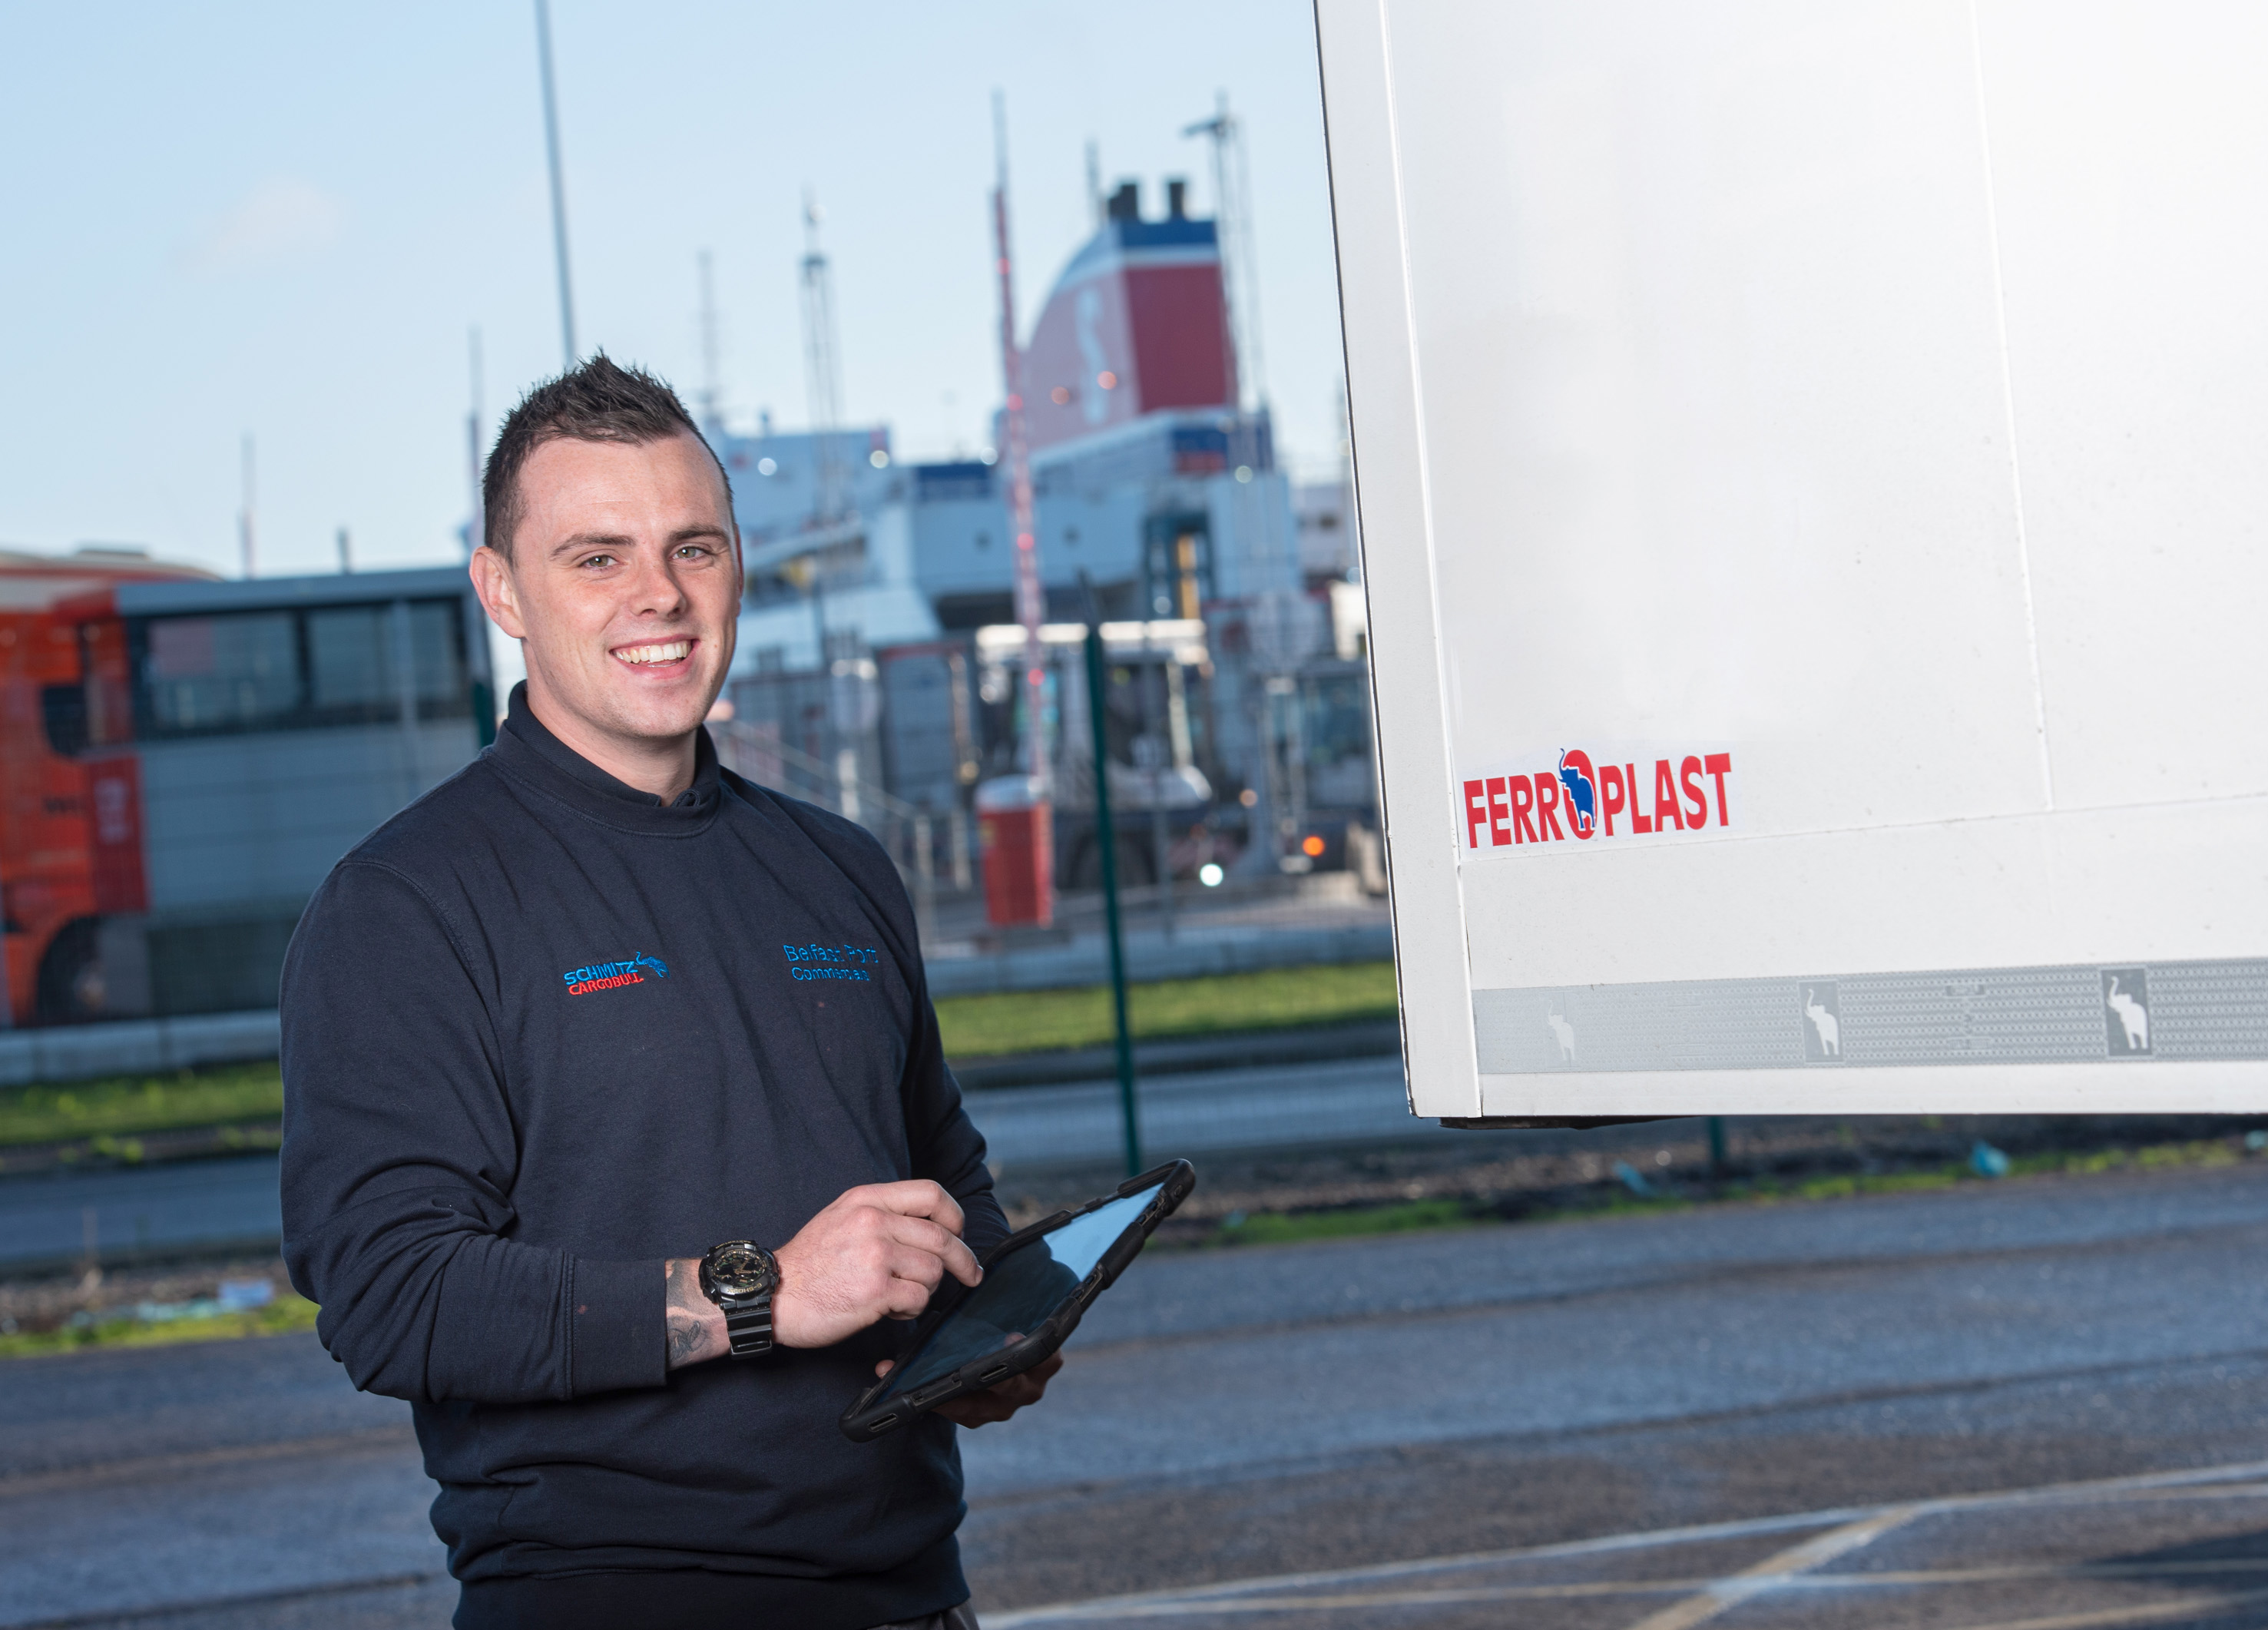 Belfast Port Commercials switches to Freeway Fleet maintenance software